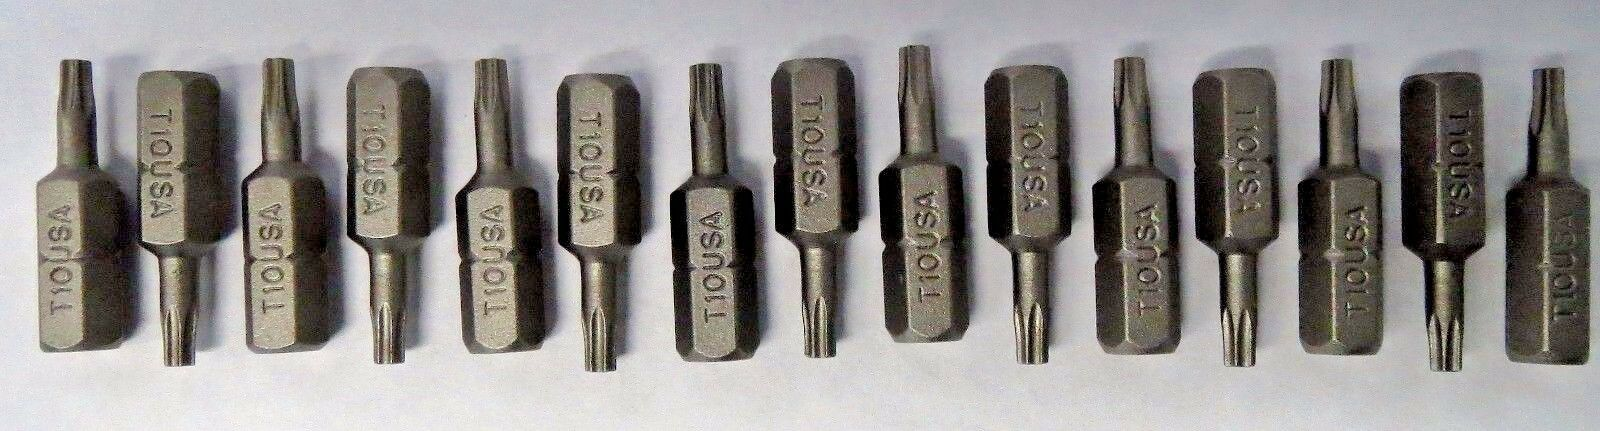 "Primary image for Bosch T10 x 1"" Insert Bits Screw Tips 15pcs. 9915370 USA"